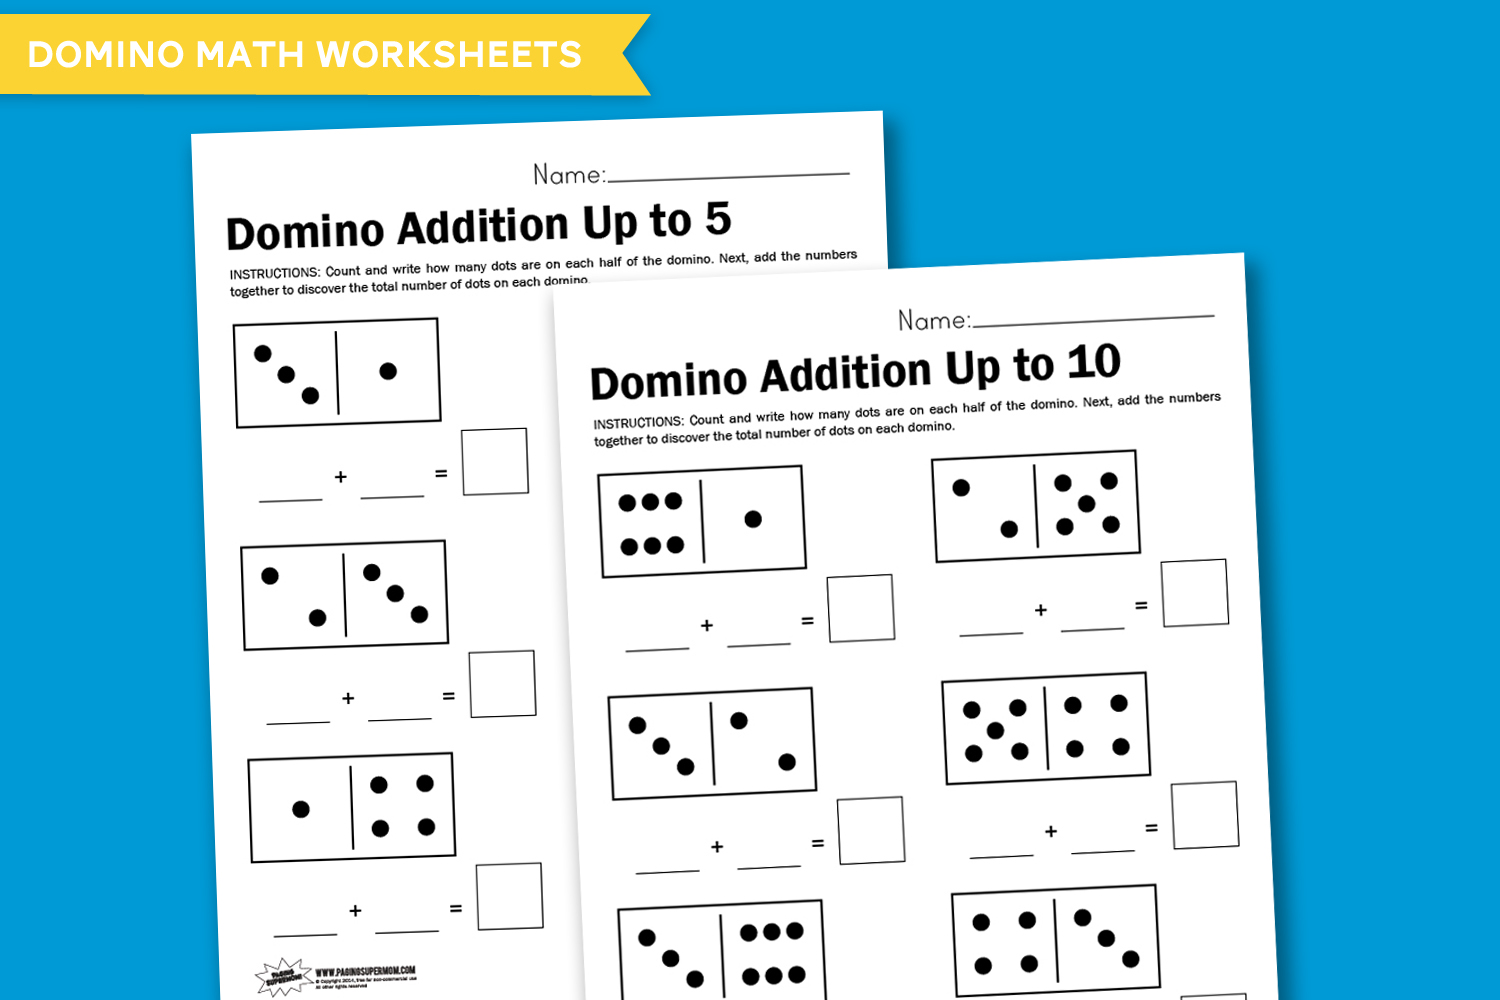 Worksheet Wednesday Domino Math